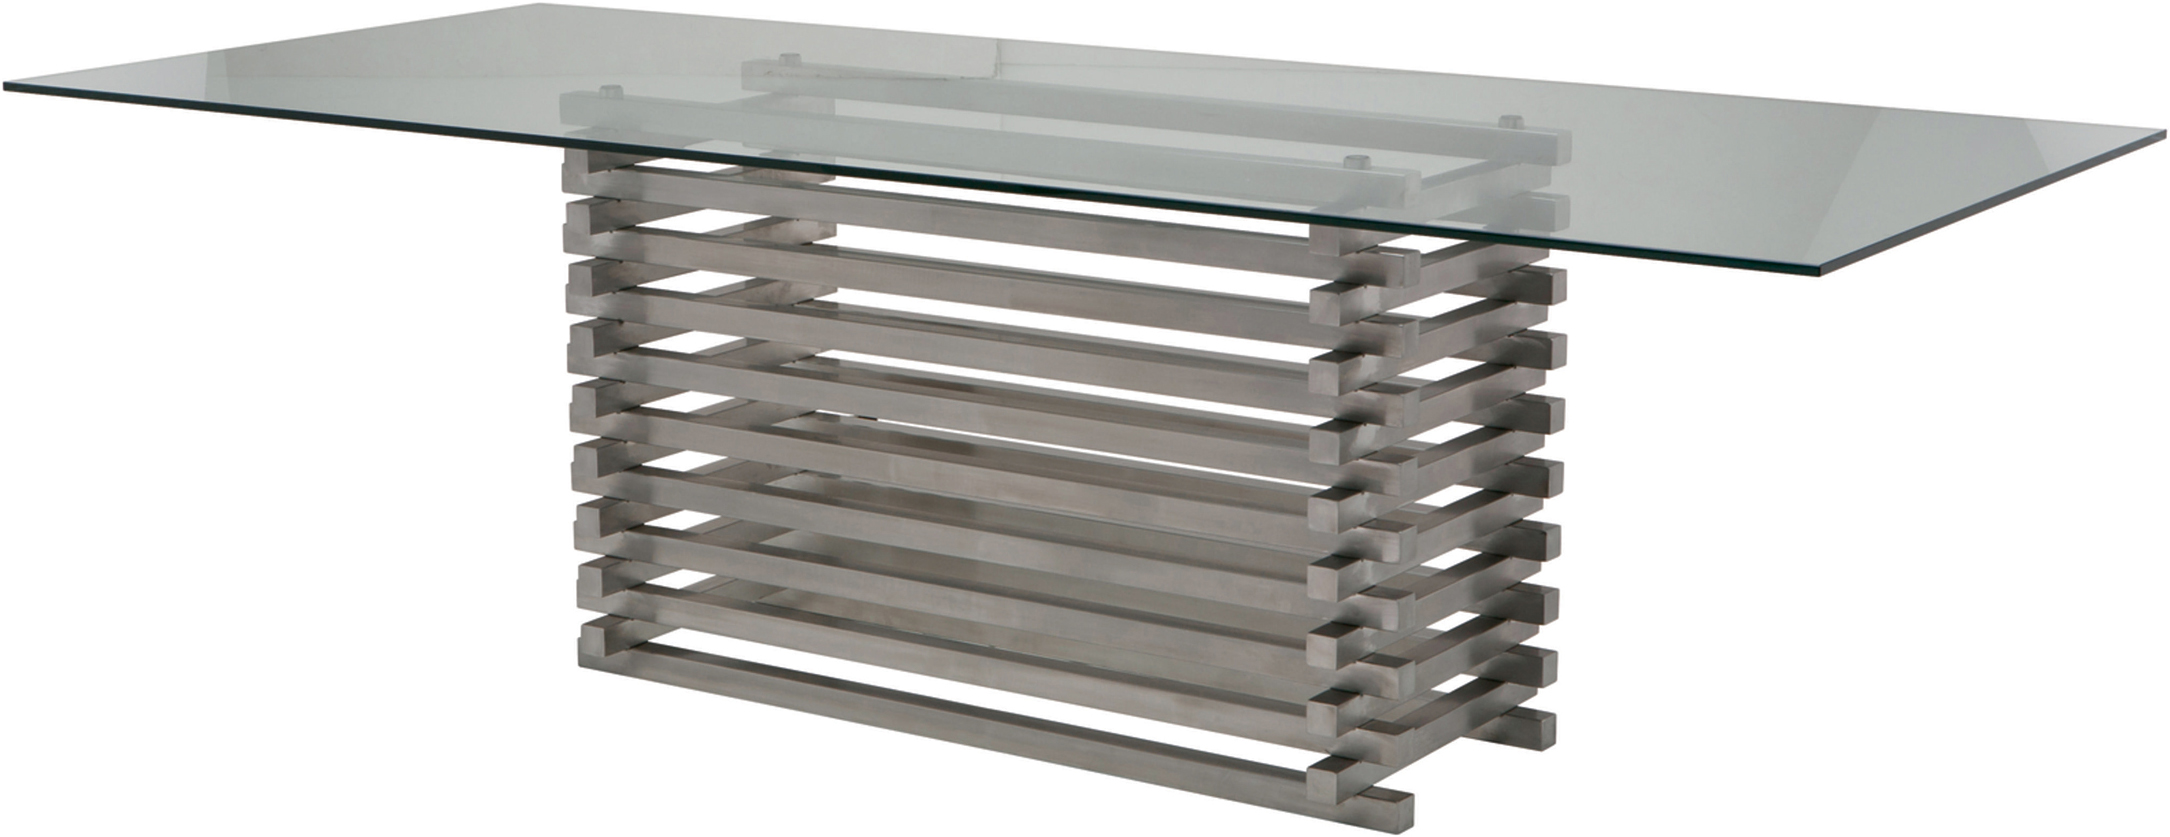 the stacked dining table in brushed stainless steel